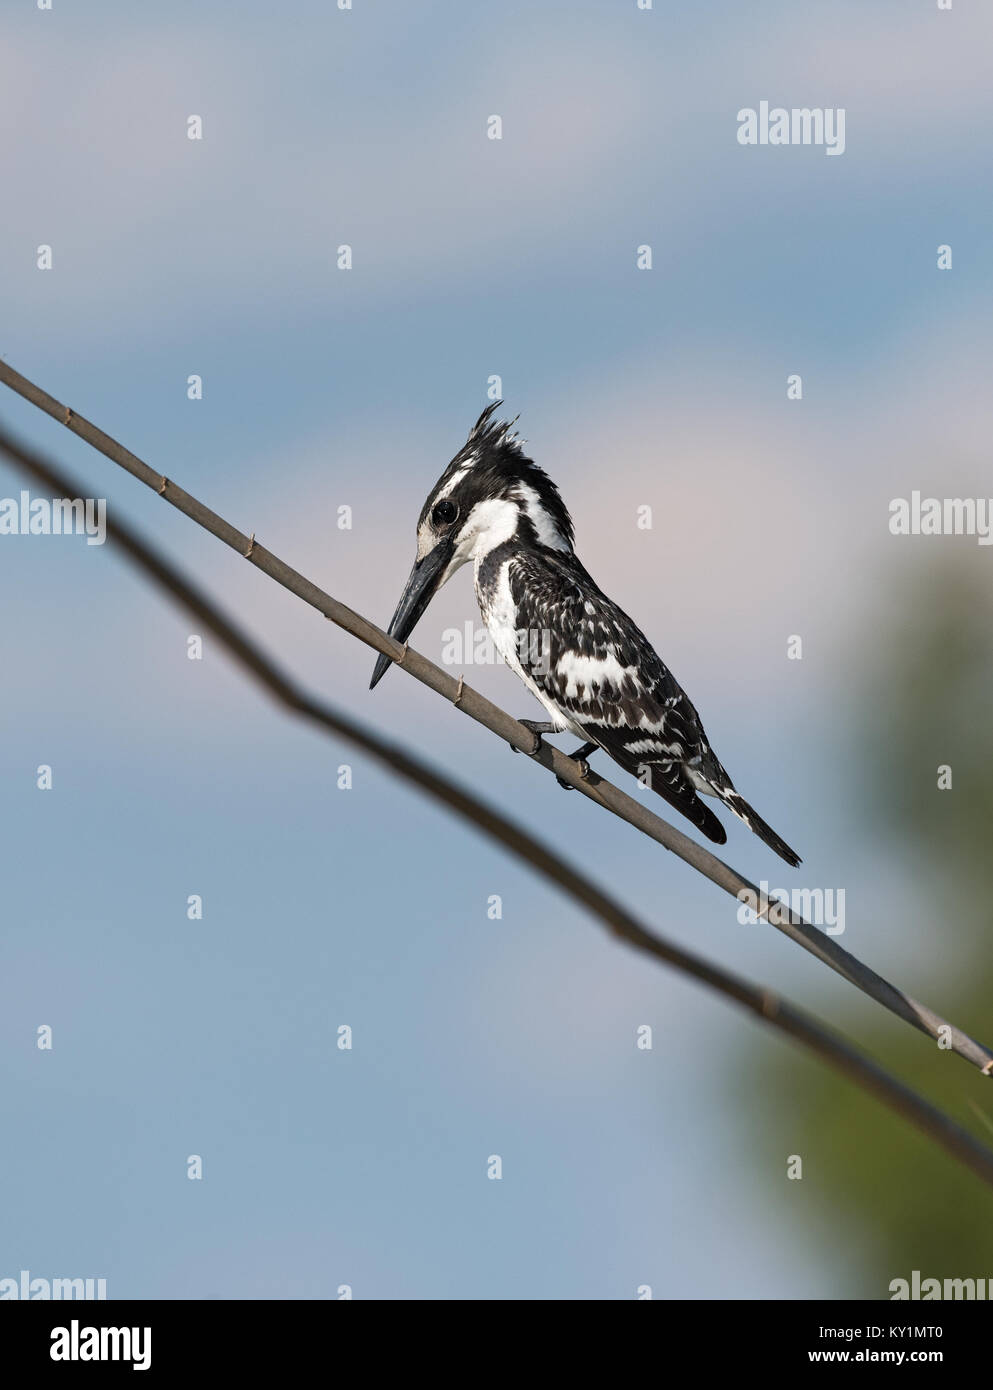 Pied Kingfisher (Ceryle rudis) sitting on a branch in Chobe National Park, Botswana Stock Photo